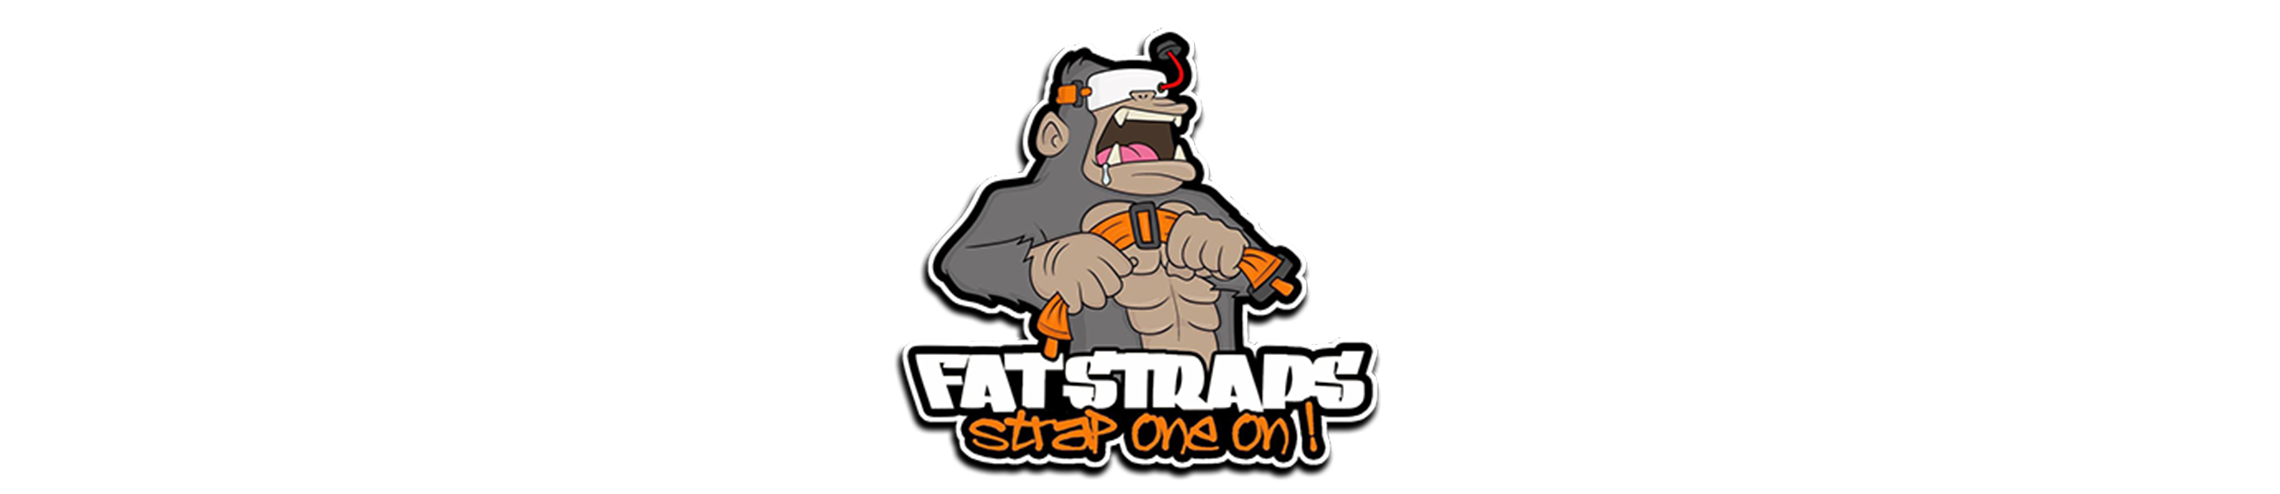 Fatstraps headband fpv banner promotion shop description australia mantisfpv